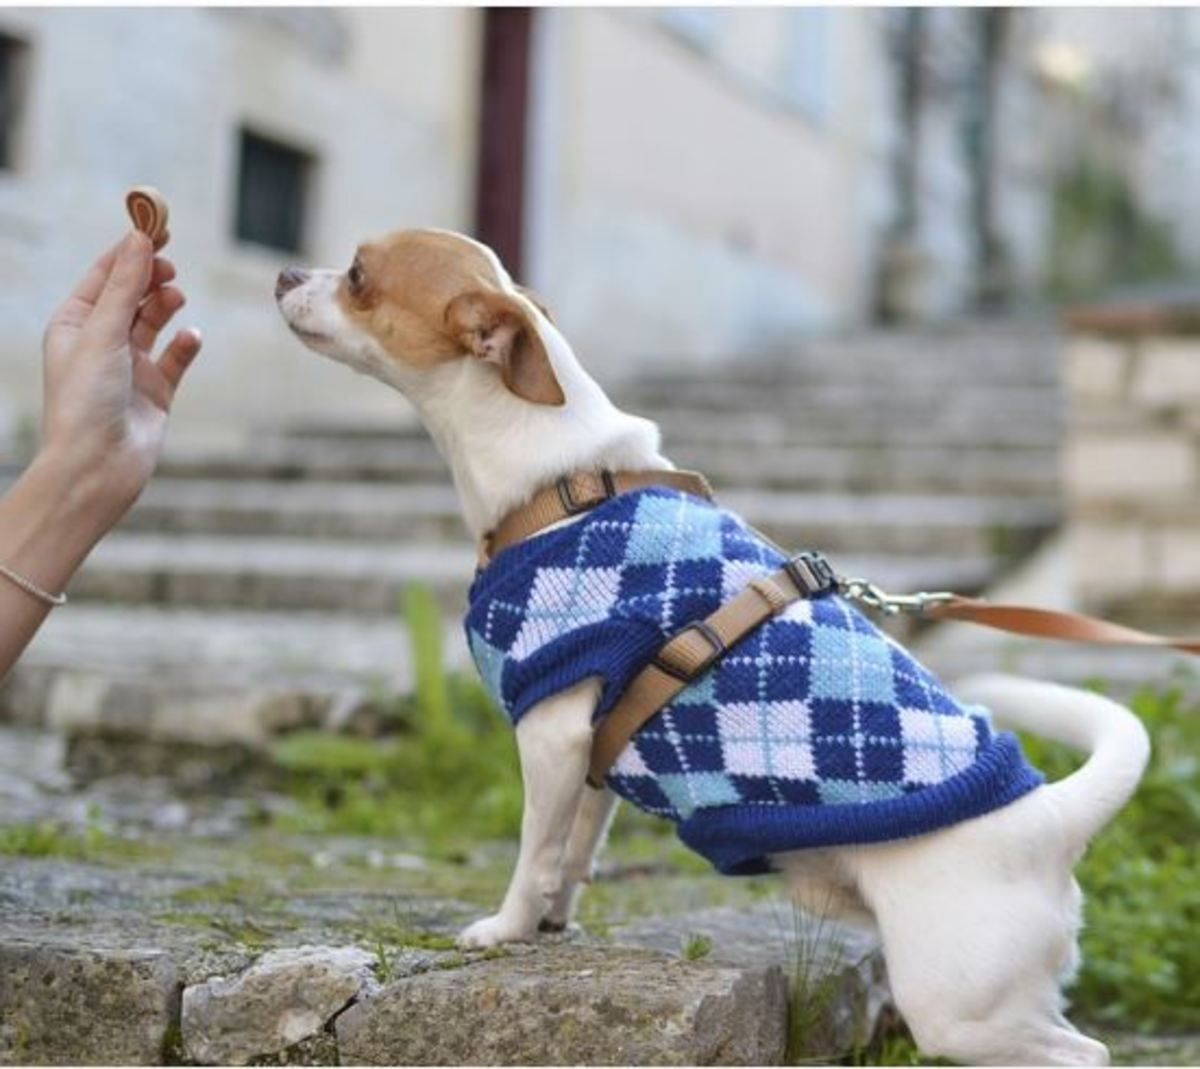 Dog owners play an important role in successful rehabilitation.